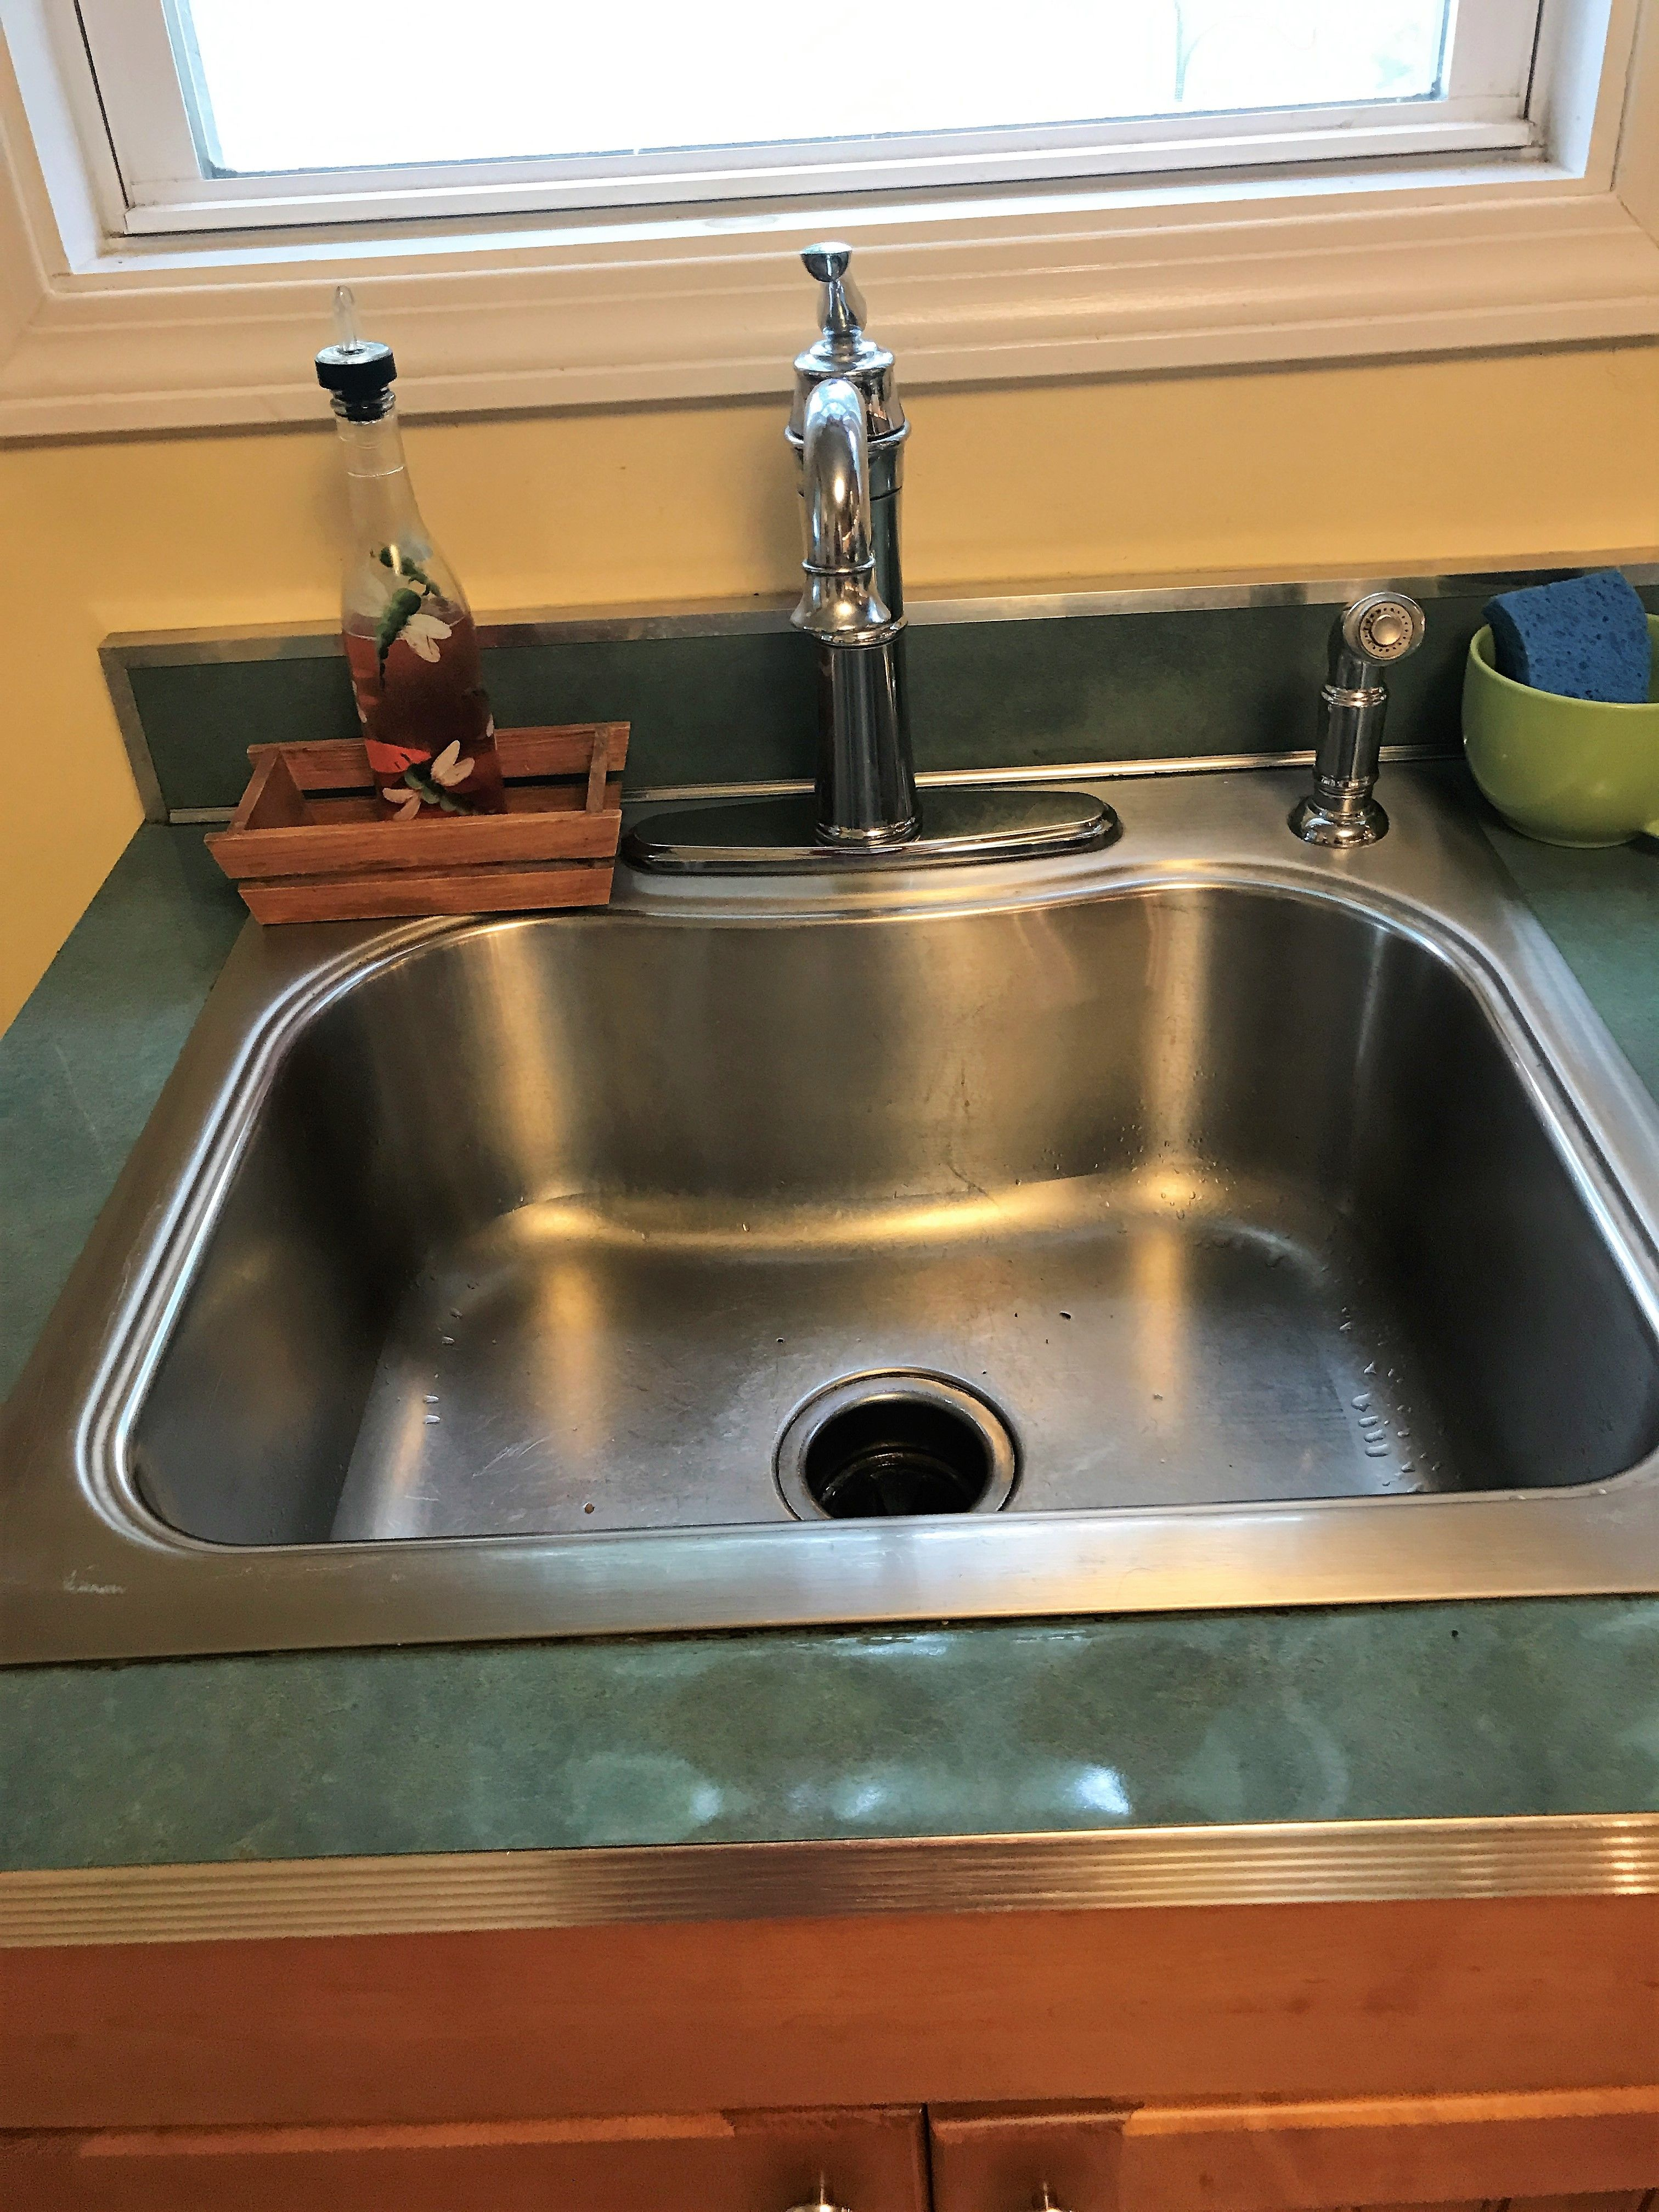 Deep Stainless Steel Sink With Gooseneck Faucet Liked The Size